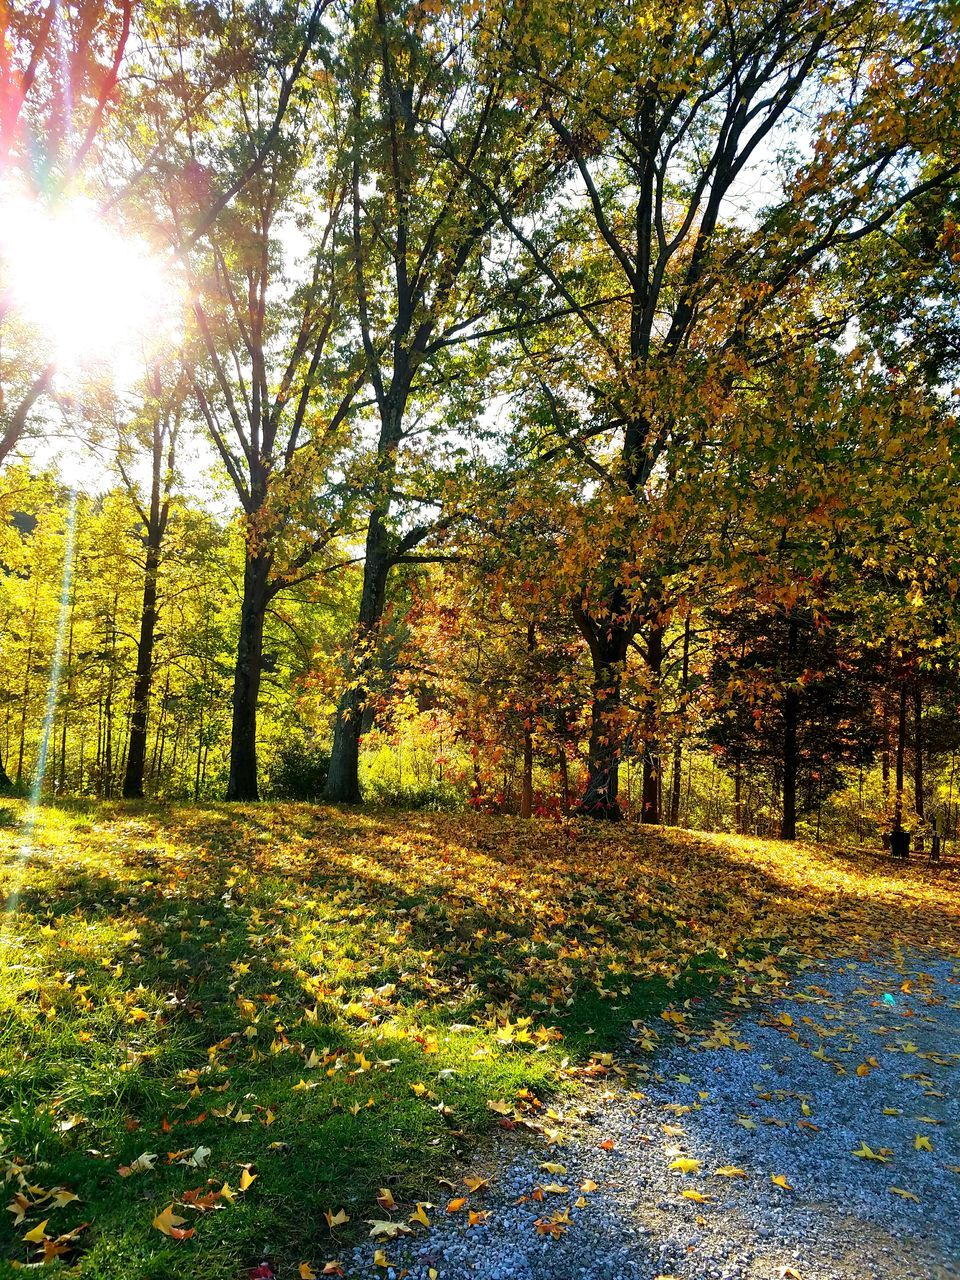 autumn, tree, nature, scenics, beauty in nature, change, tranquility, sunbeam, sunlight, tranquil scene, leaf, sun, outdoors, lens flare, no people, growth, day, forest, landscape, grass, sky